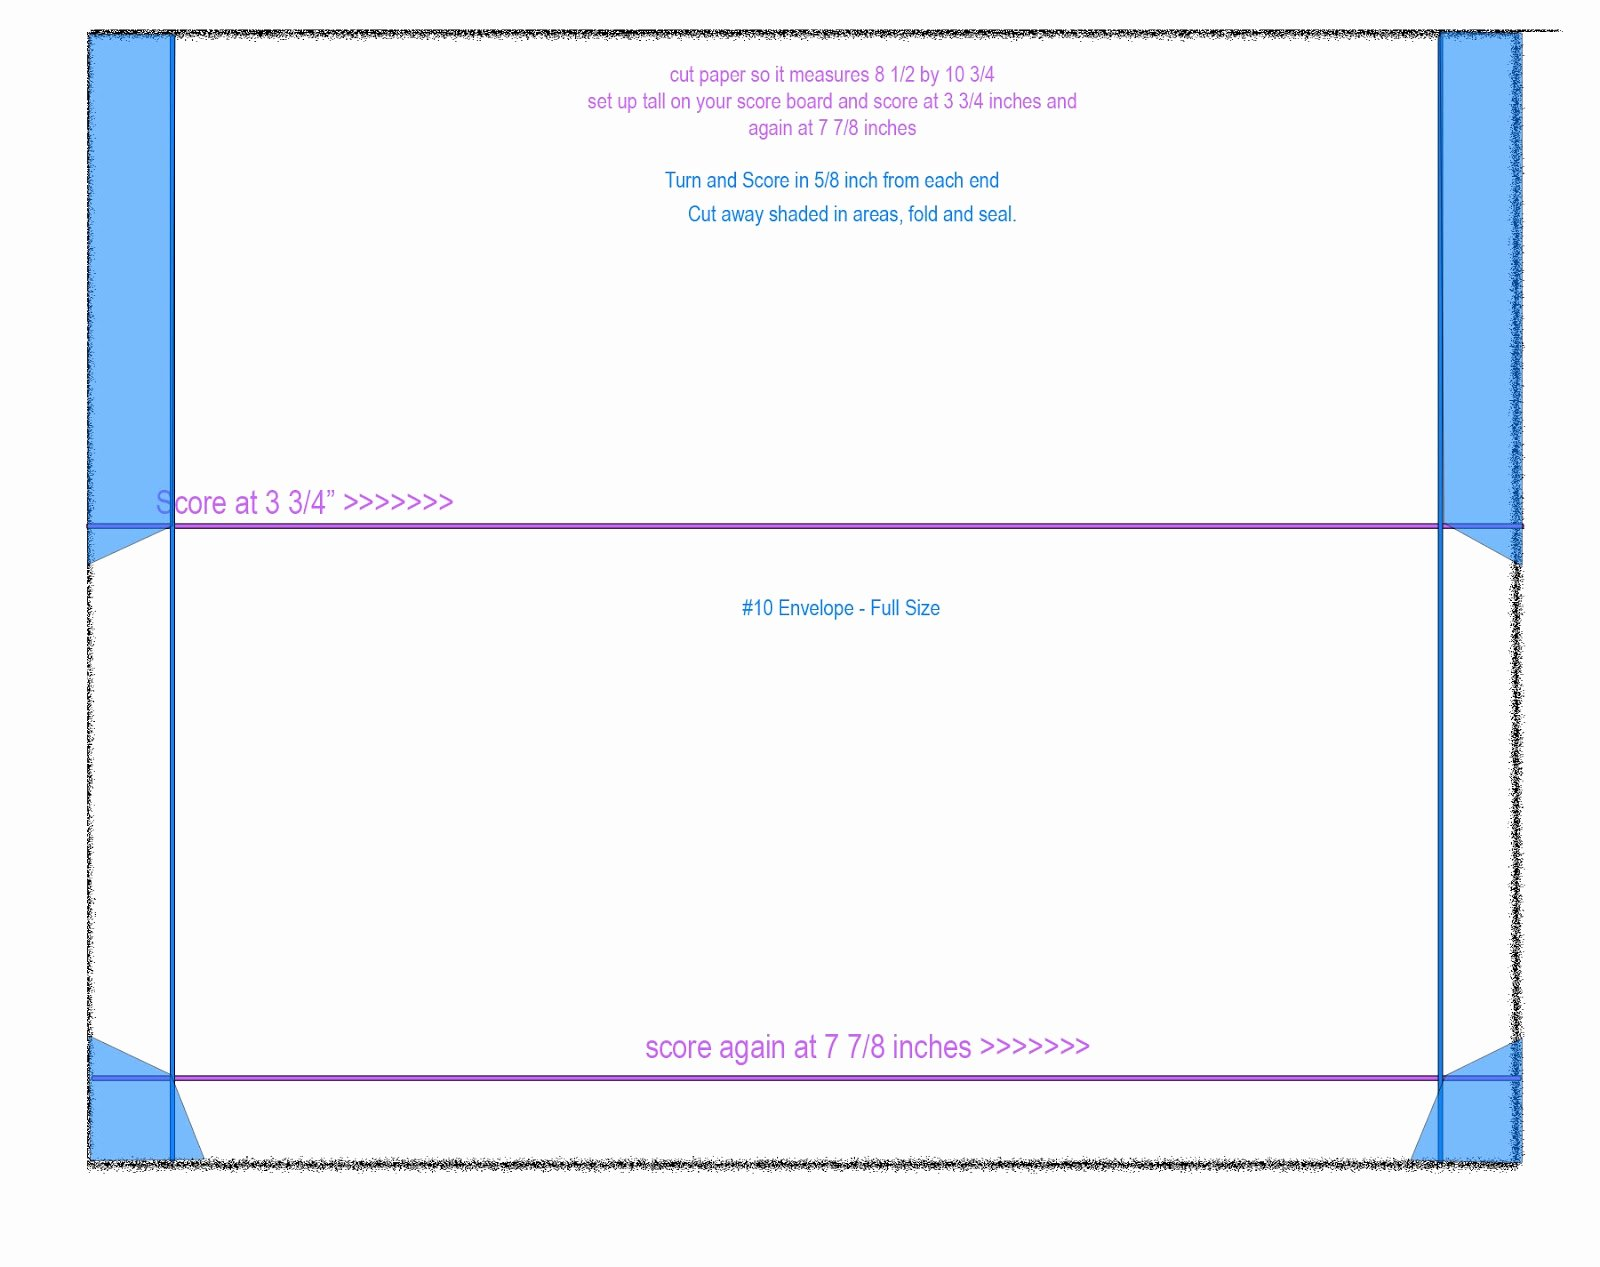 Microsoft Word Envelope Template Free Download Lovely Download 10 Envelope Template In Word Signalutorrent